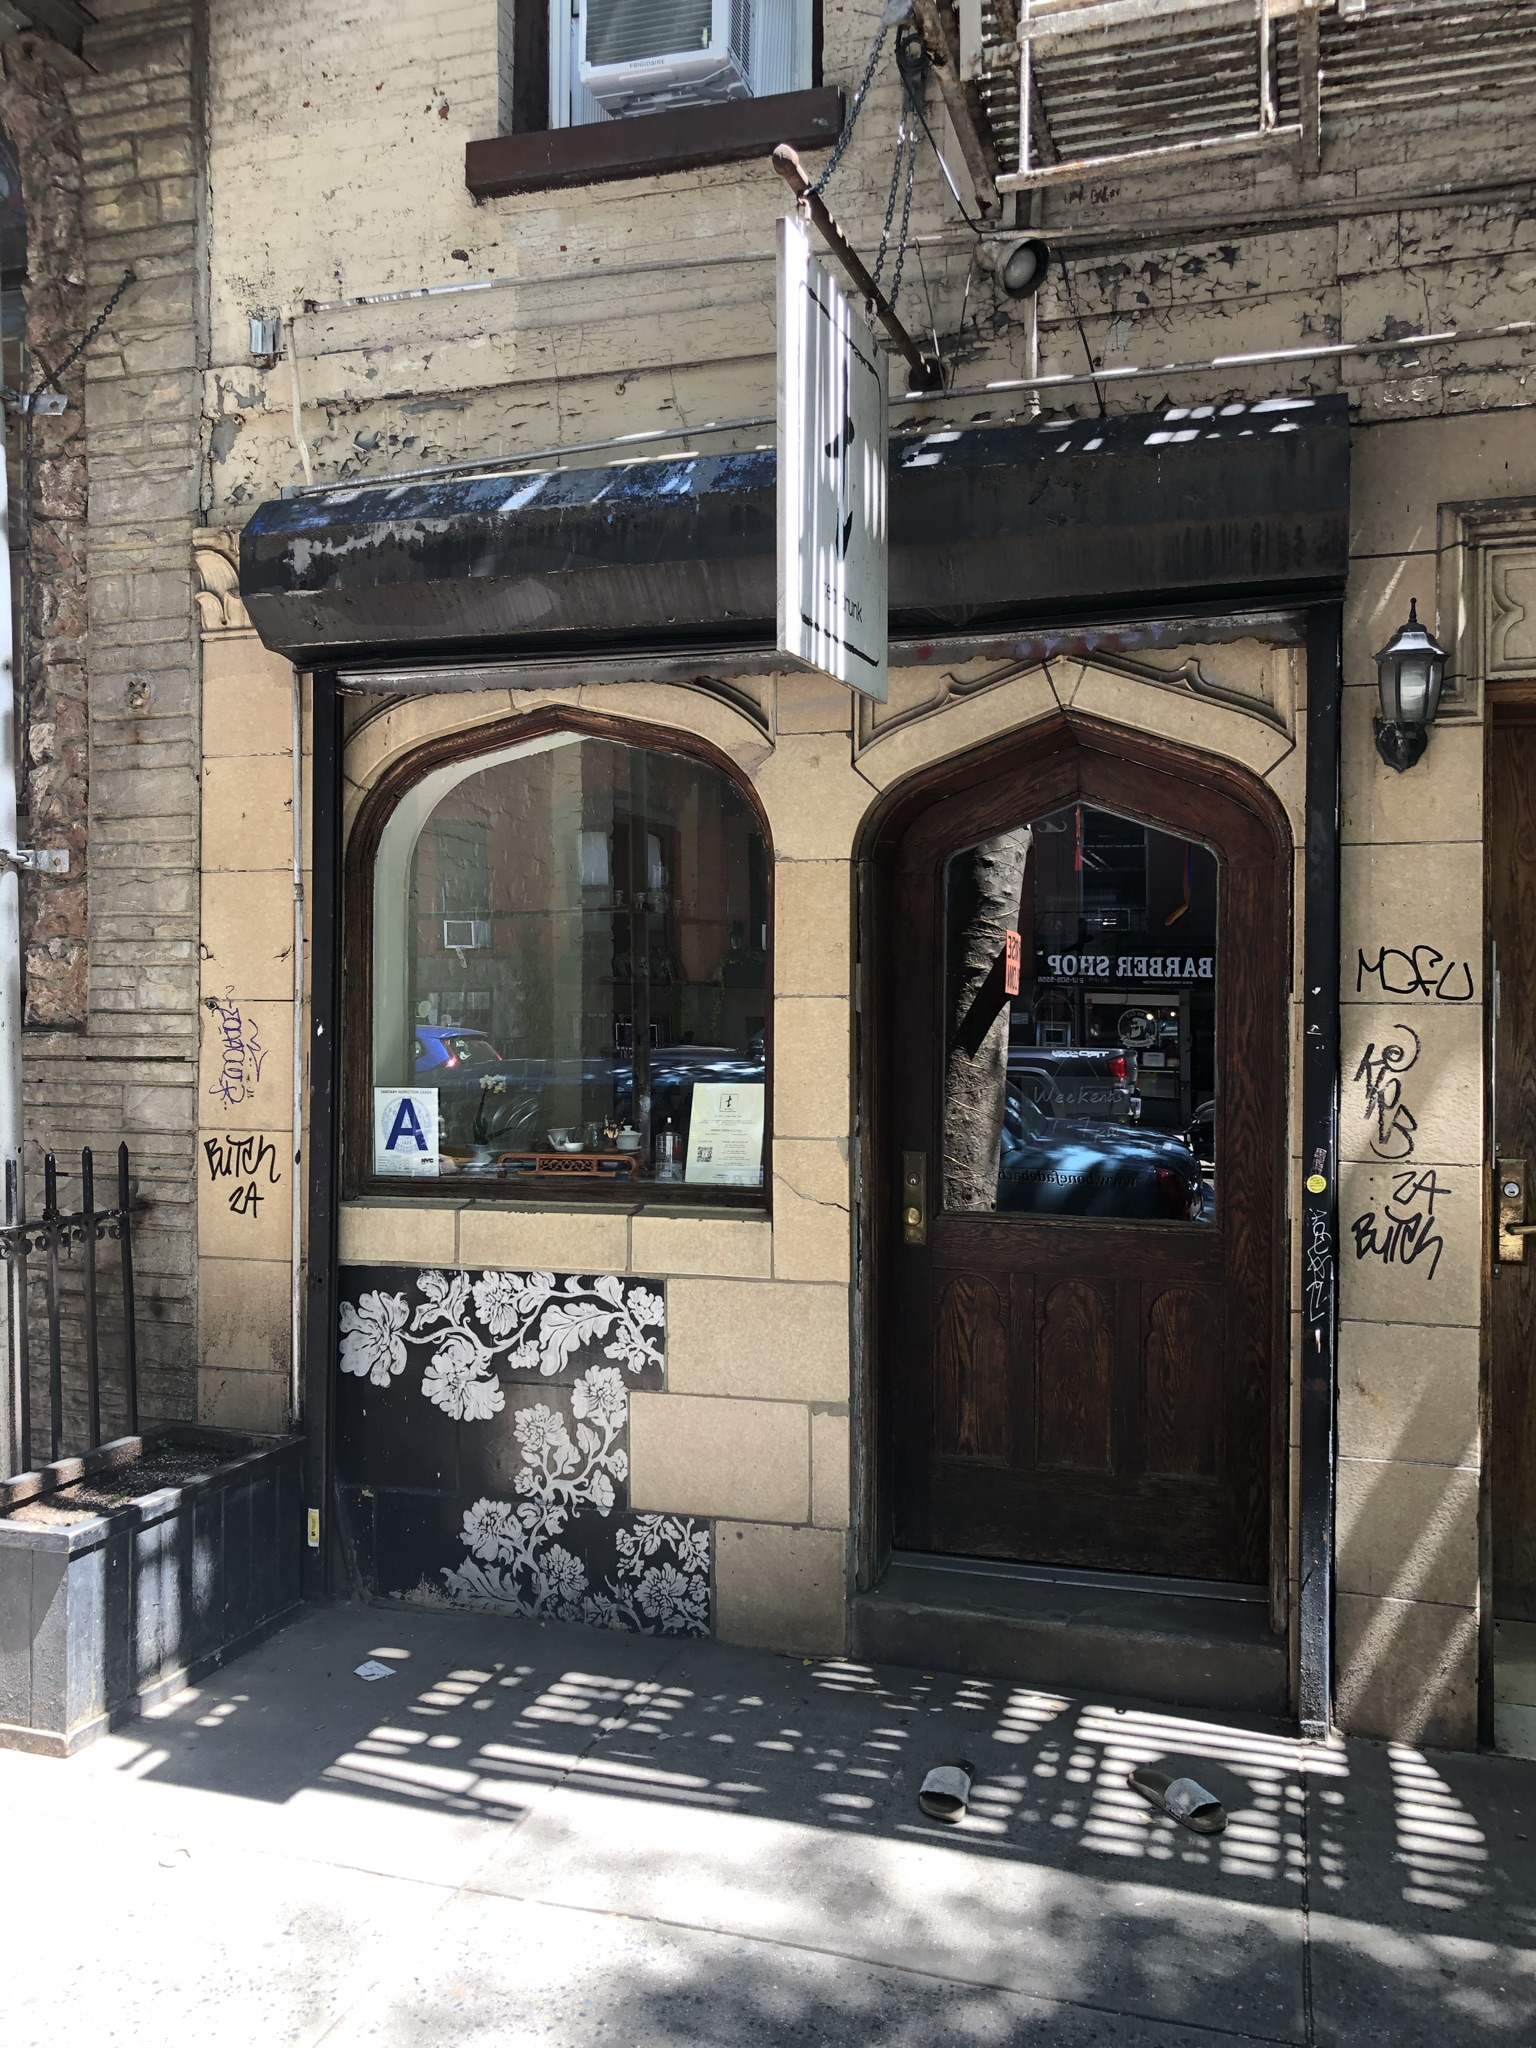 Asking Rent Reduced! East Village Retail or Non-Vented Food Use